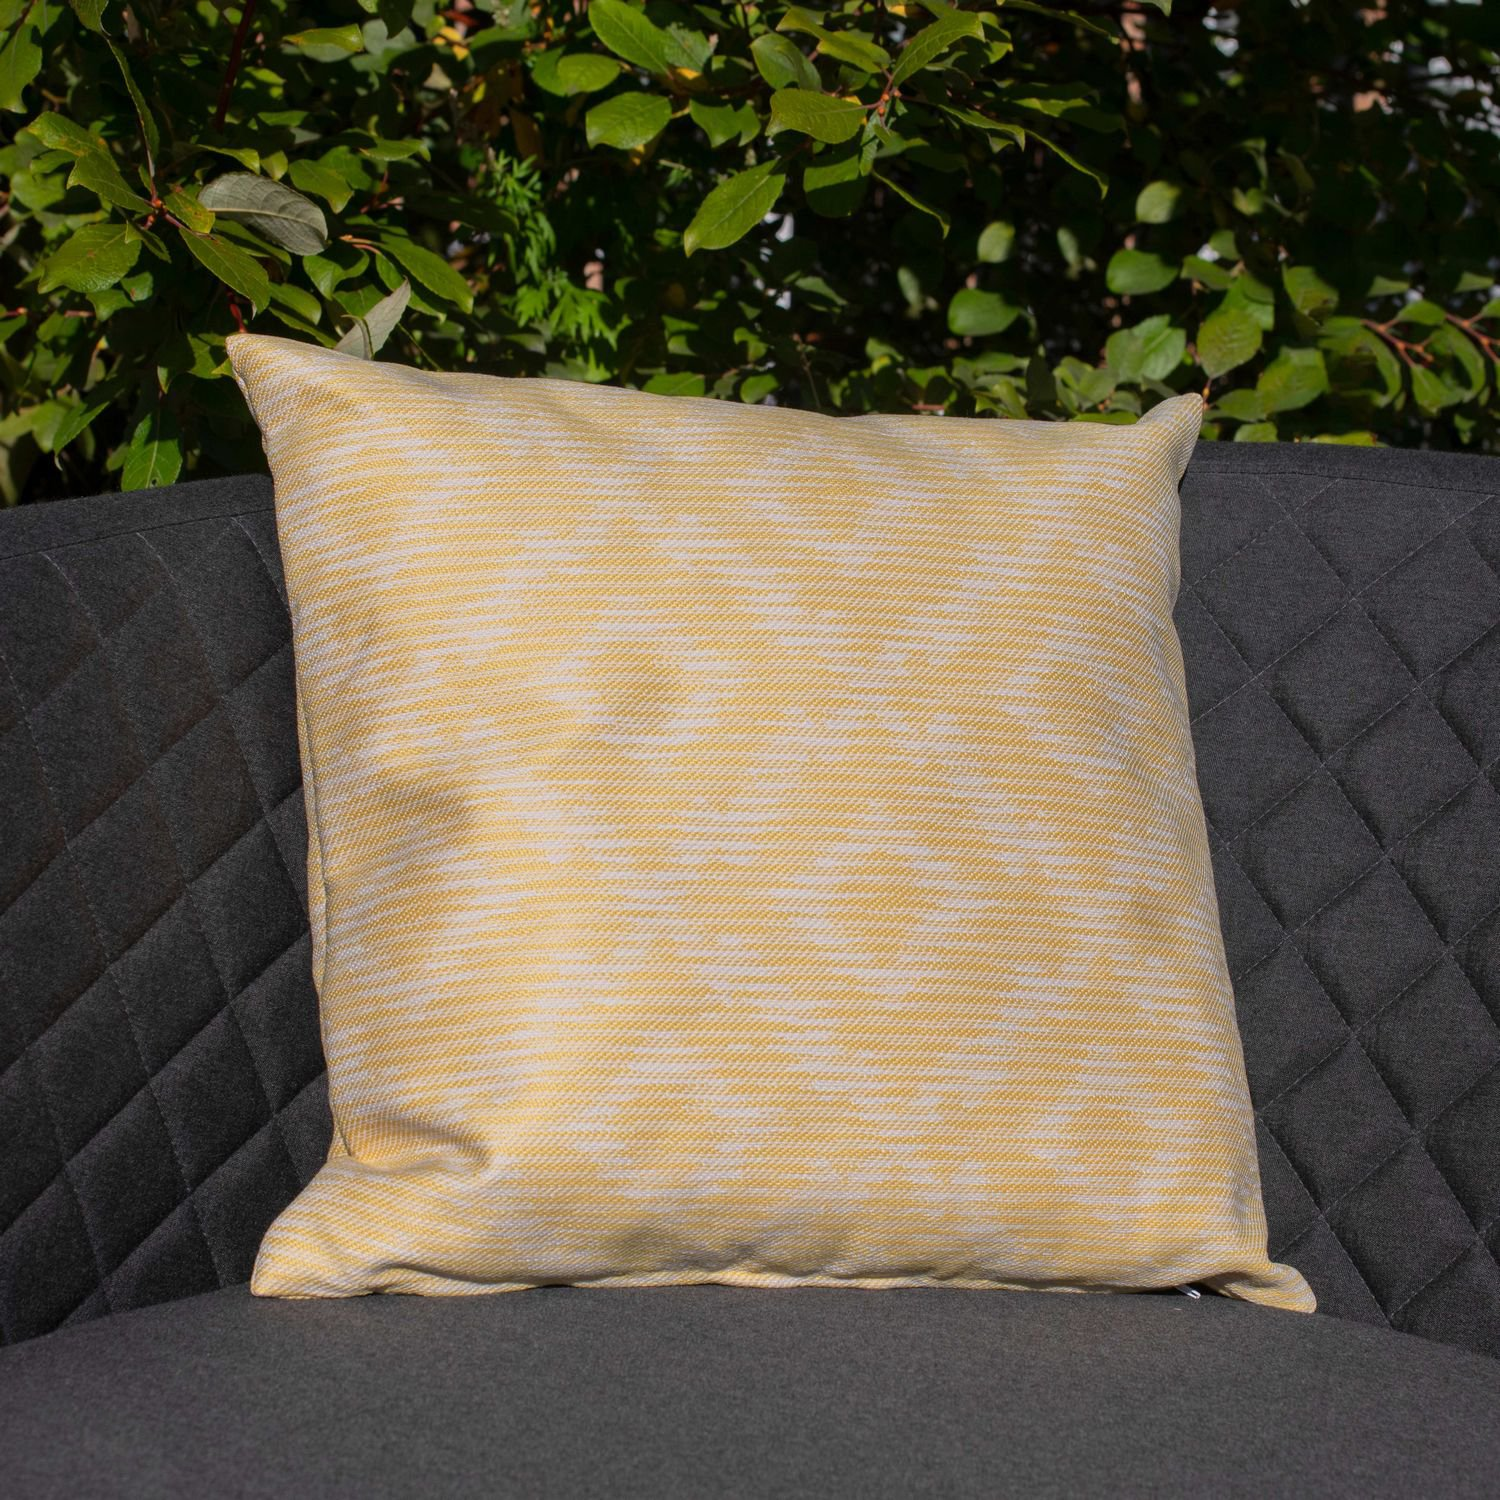 image-Maze Lounge Outdoor Fabric Scatter Cushion in Santorini Yellow Pair